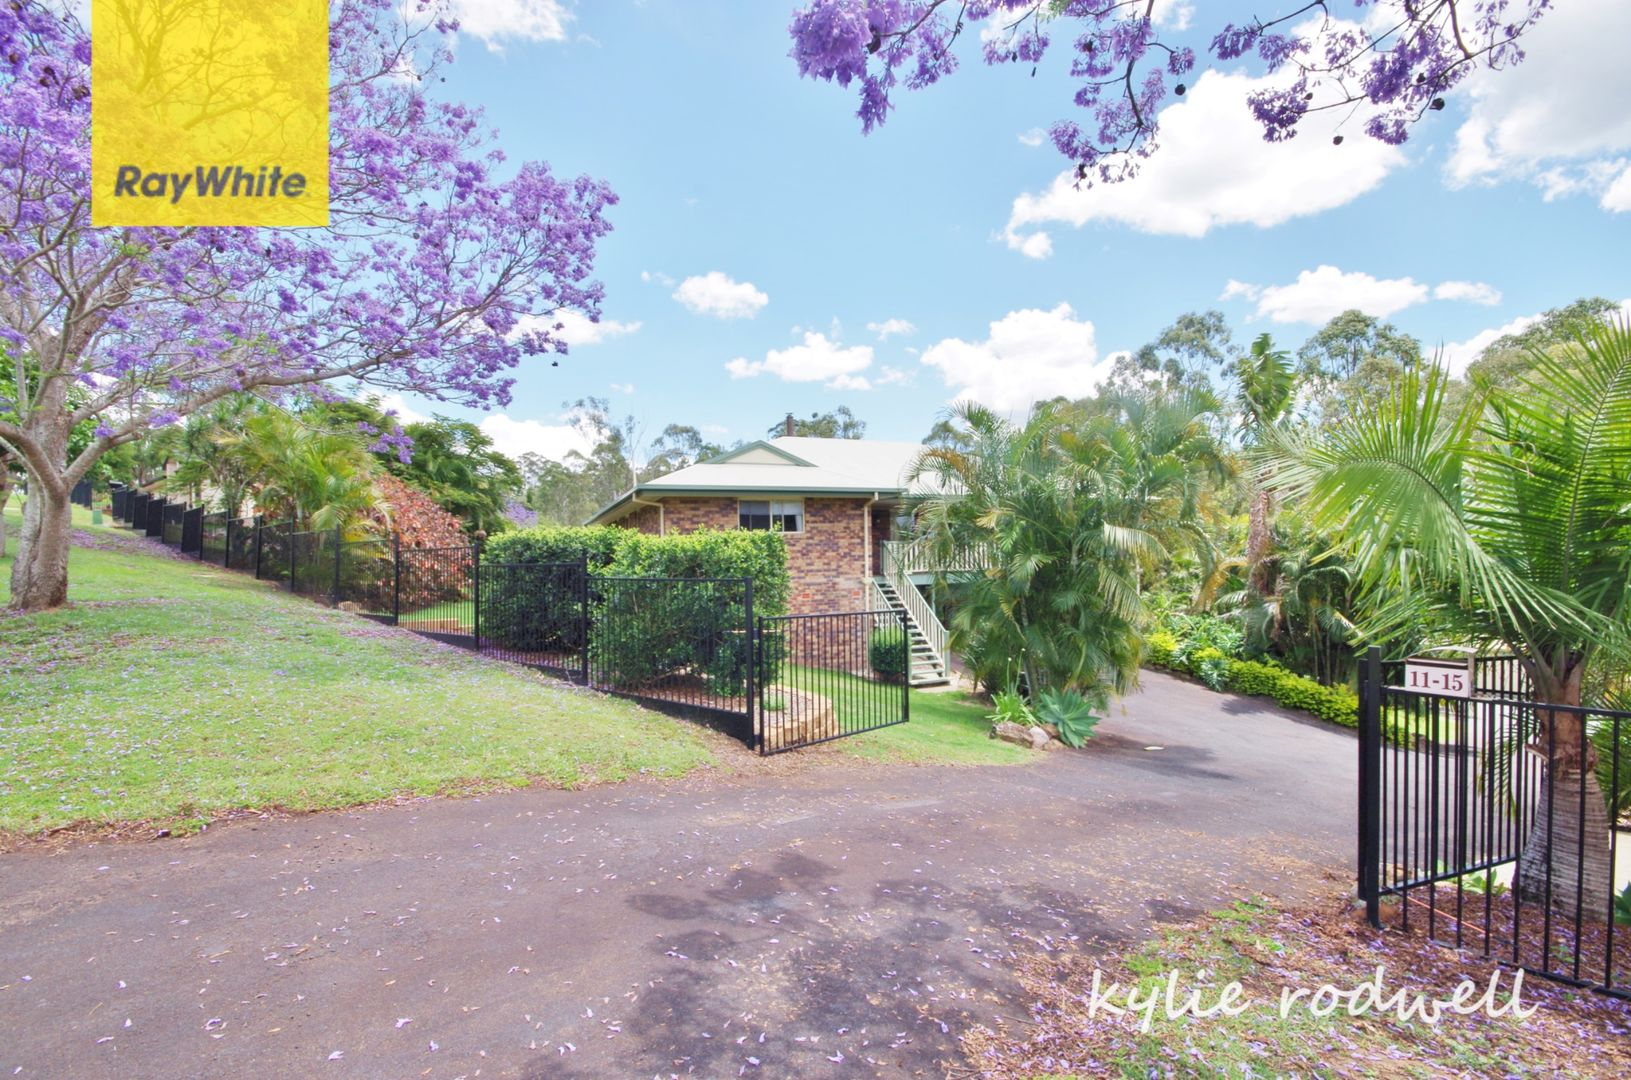 11-15 Braeview Place, Beaudesert QLD 4285